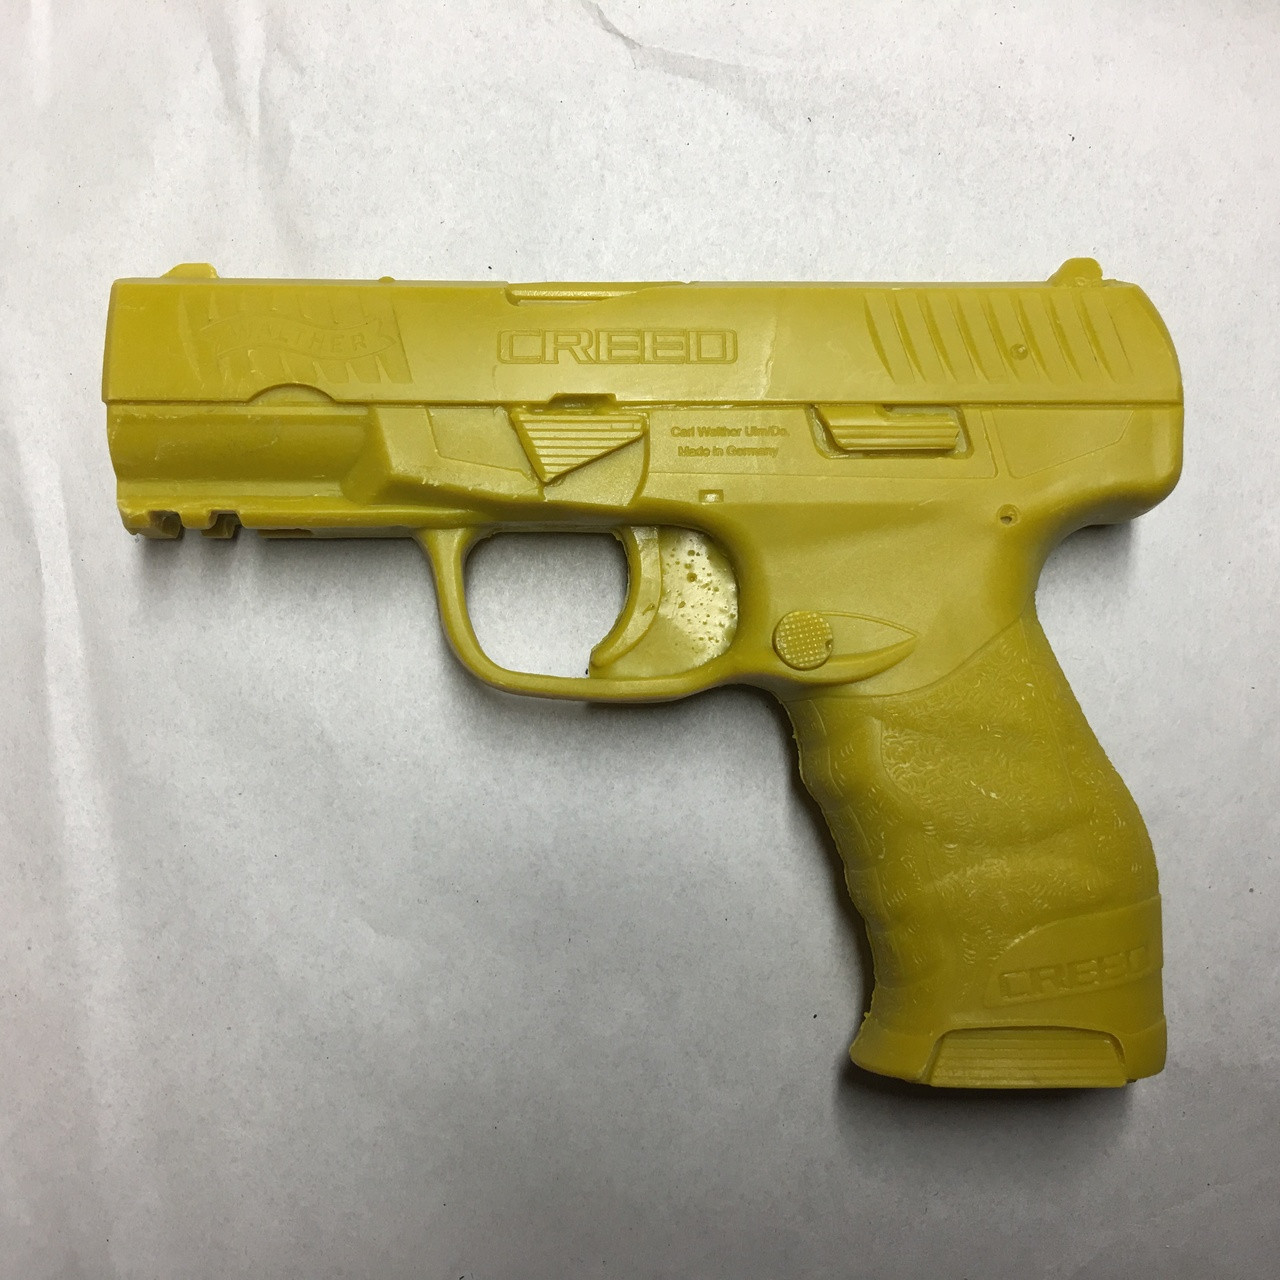 Unprepped Walther Creed